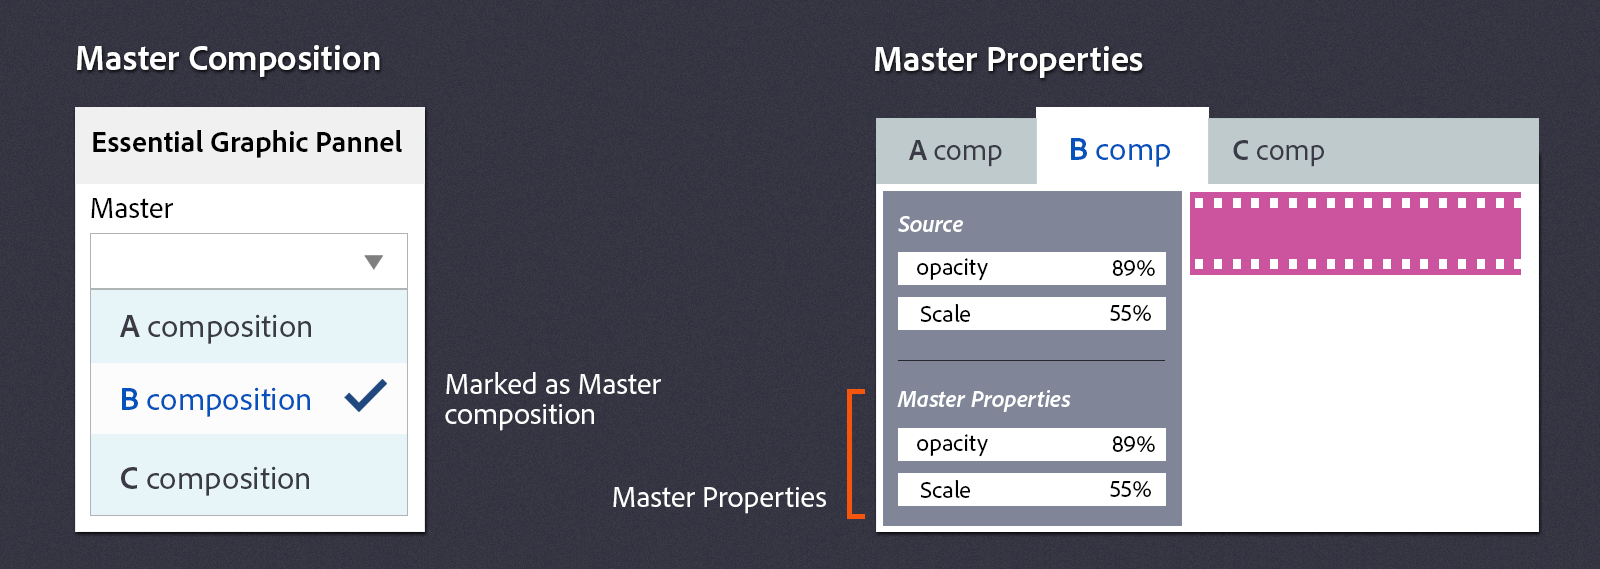 Master Properties and Master Composition